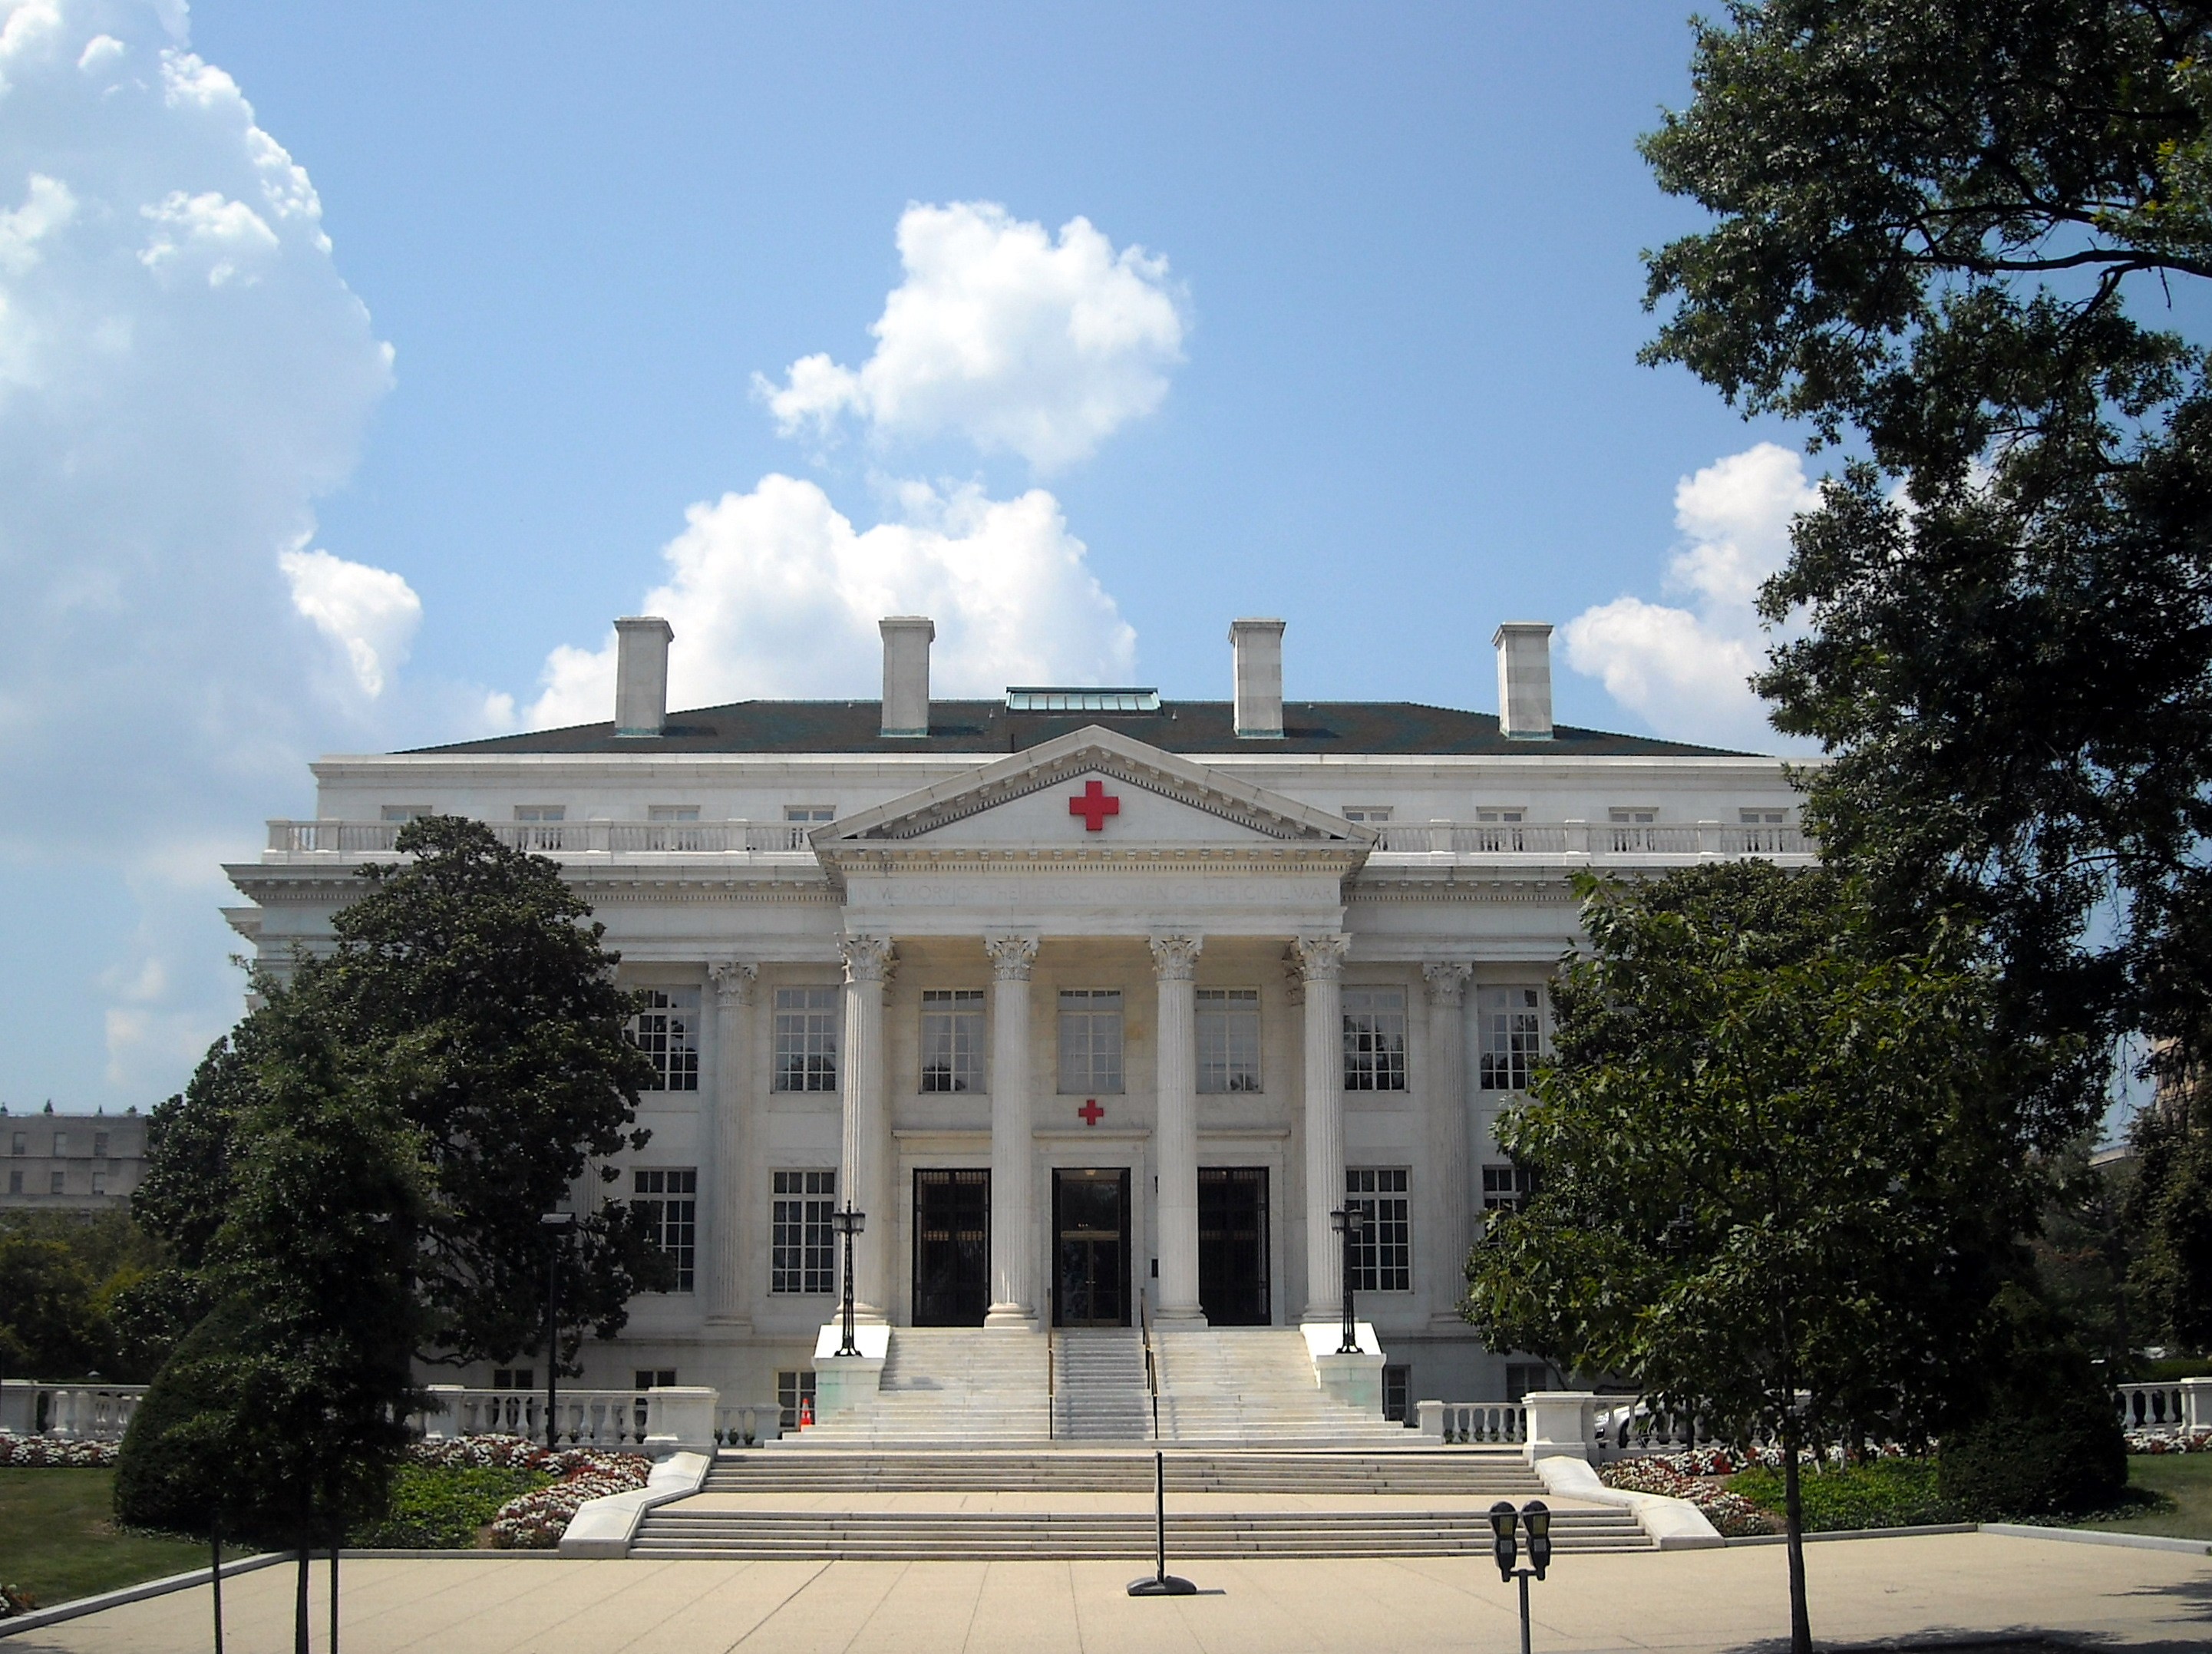 The American Red Cross National Headquarters in Washington, D.C. is a National Historic Landmark.